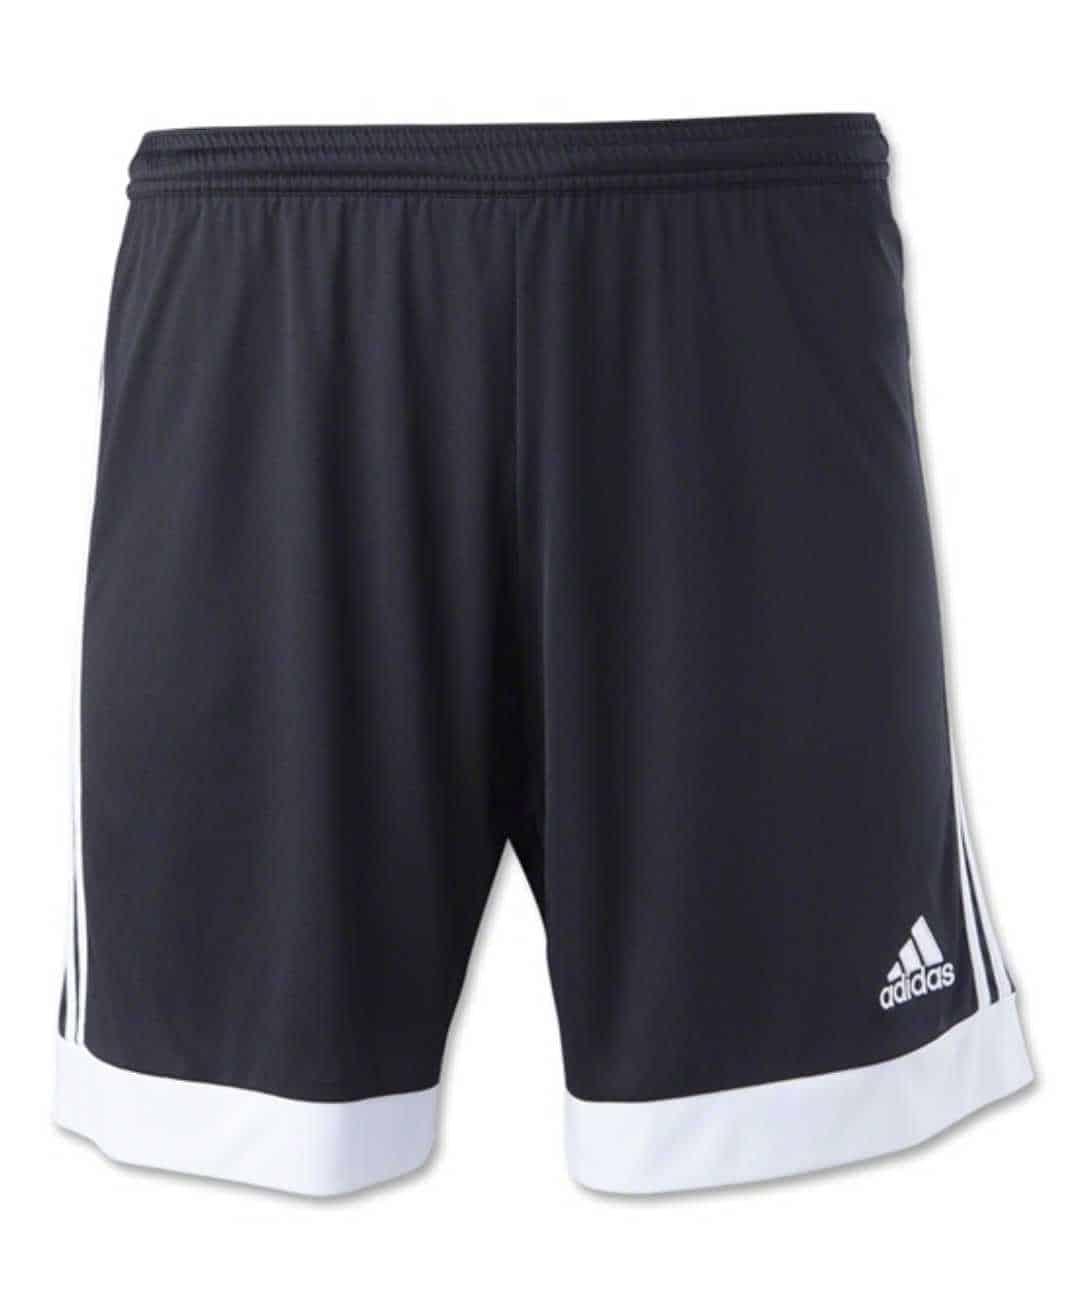 adidas tiro 15 shorts youth. Black Bedroom Furniture Sets. Home Design Ideas